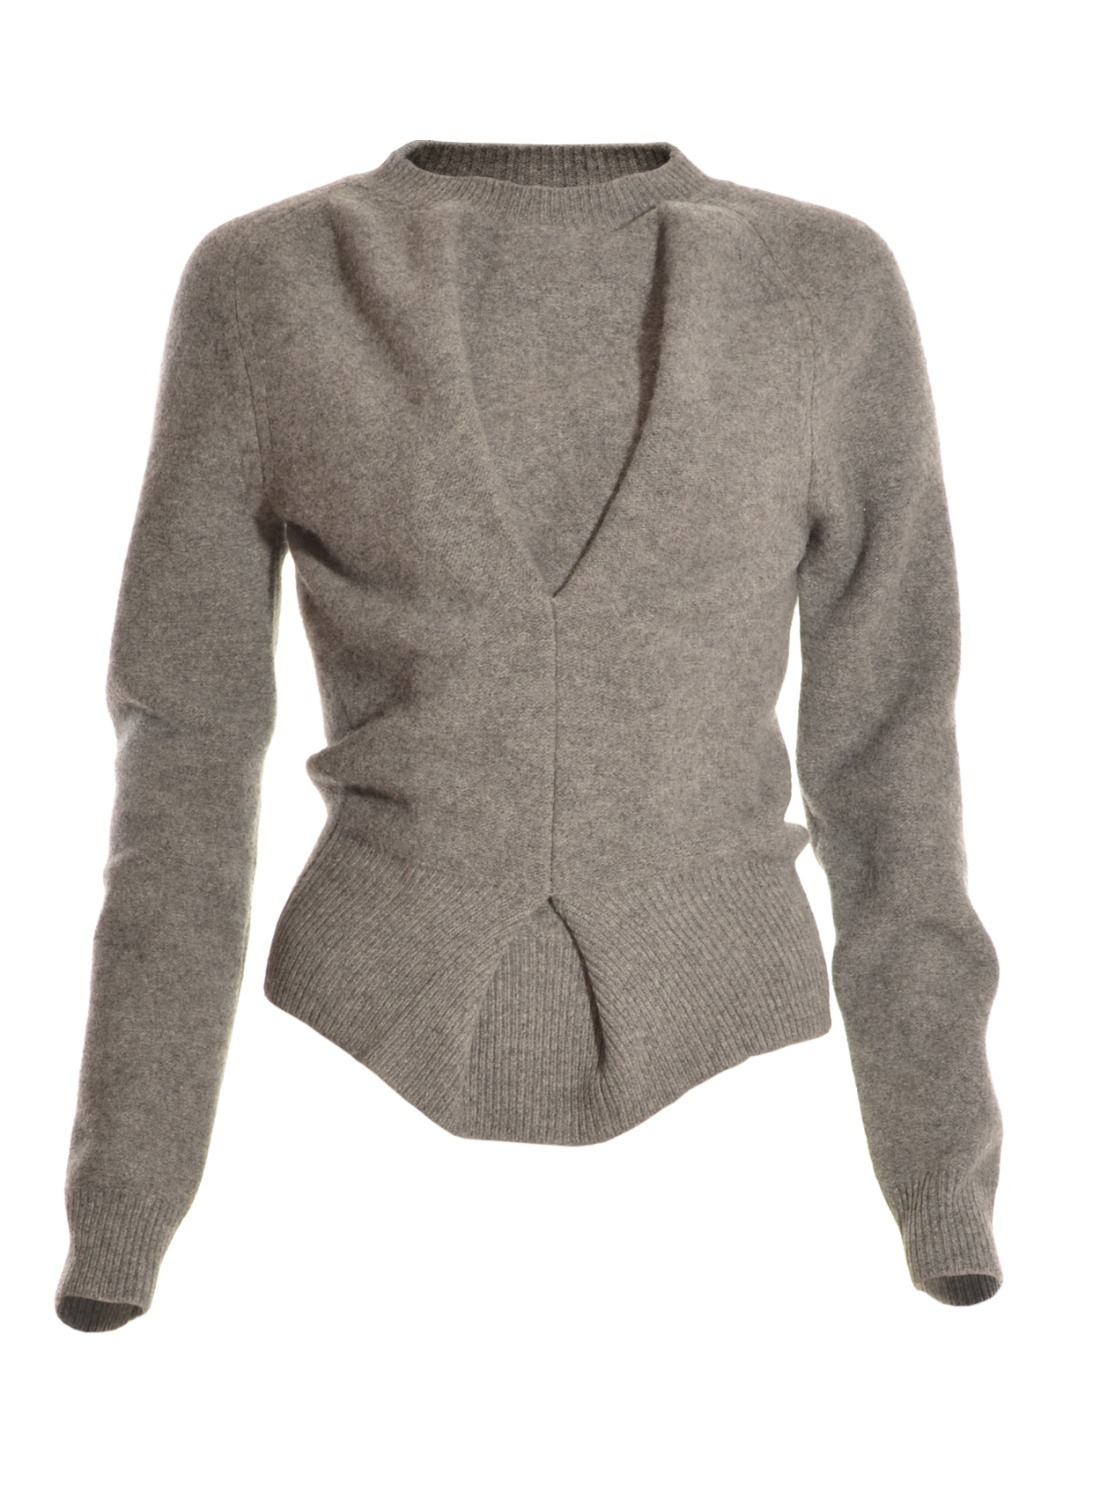 J.w.anderson Grey Twisted Boiled Wool Sweater in Gray | Lyst